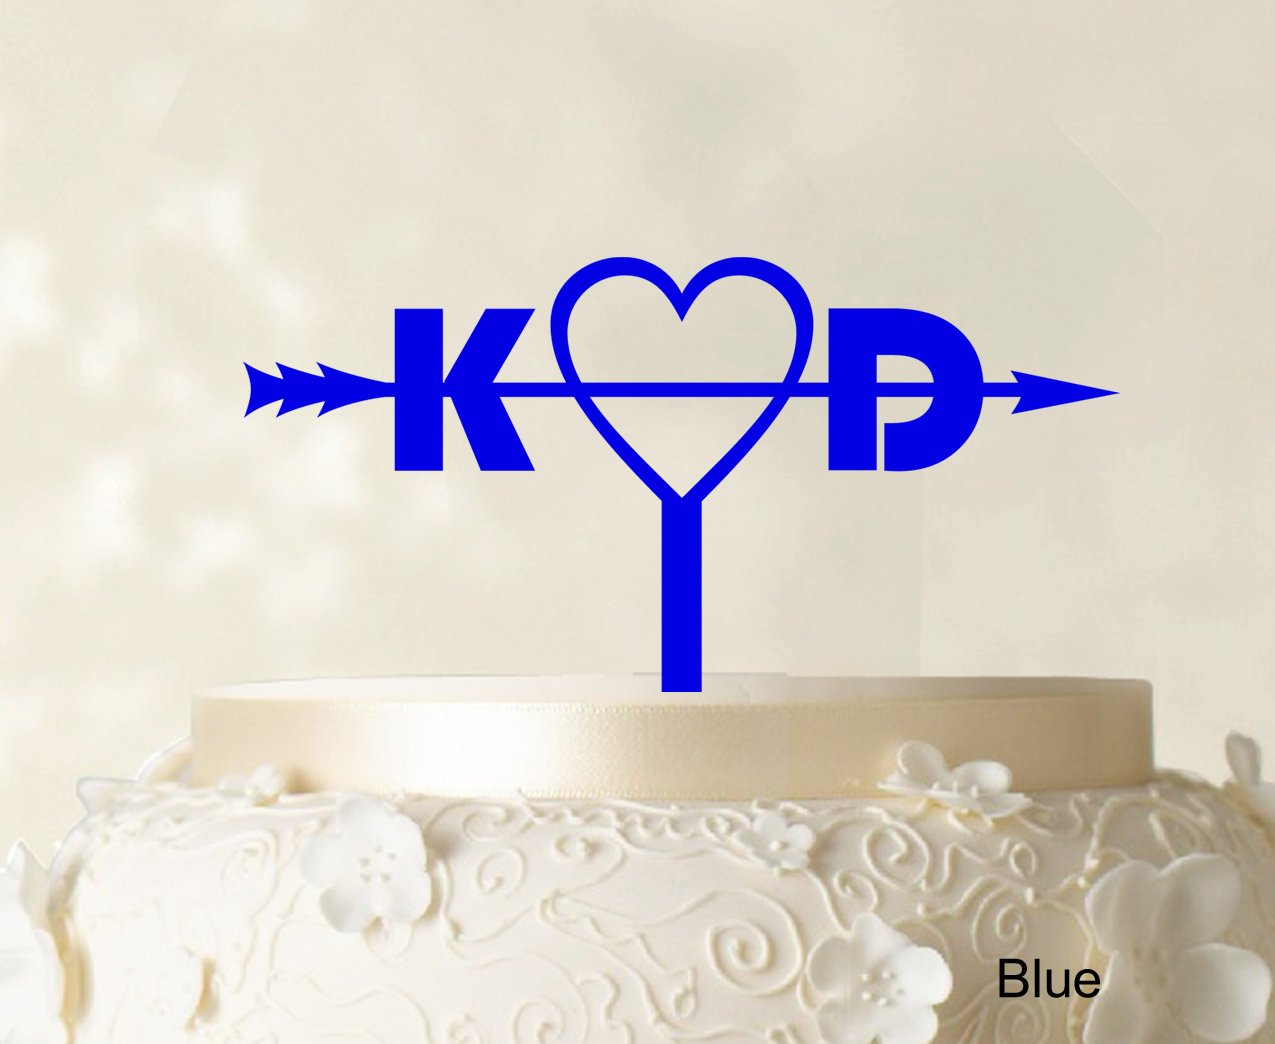 Initial Custom Wedding Cake Topper Personalized Blue Cake Topper Color Option Available 6''-8'' Inches Wide